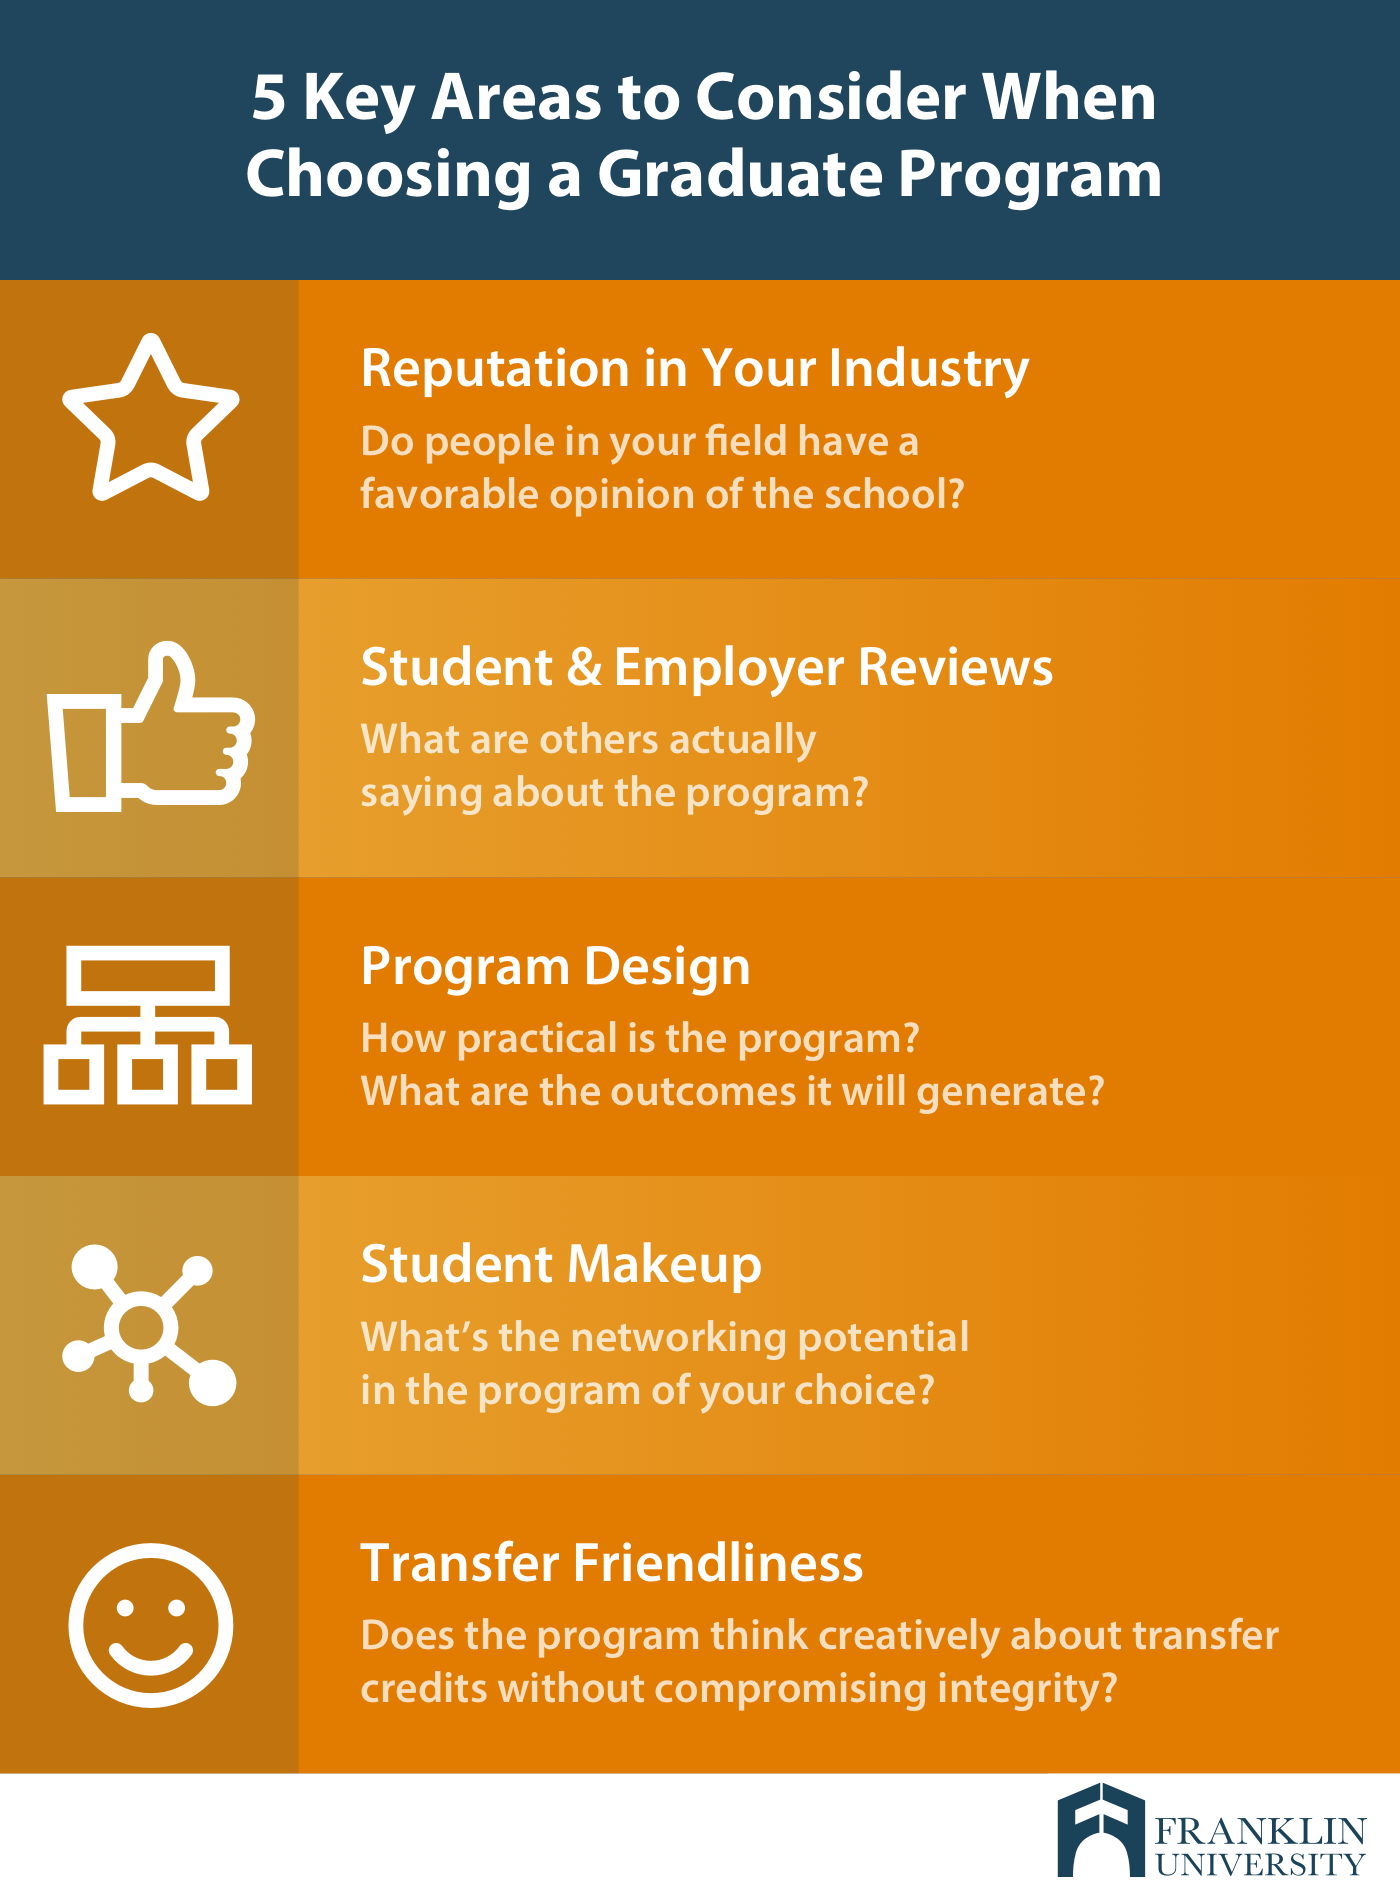 graphic describes 5 key areas to consider when choosing a graduate program